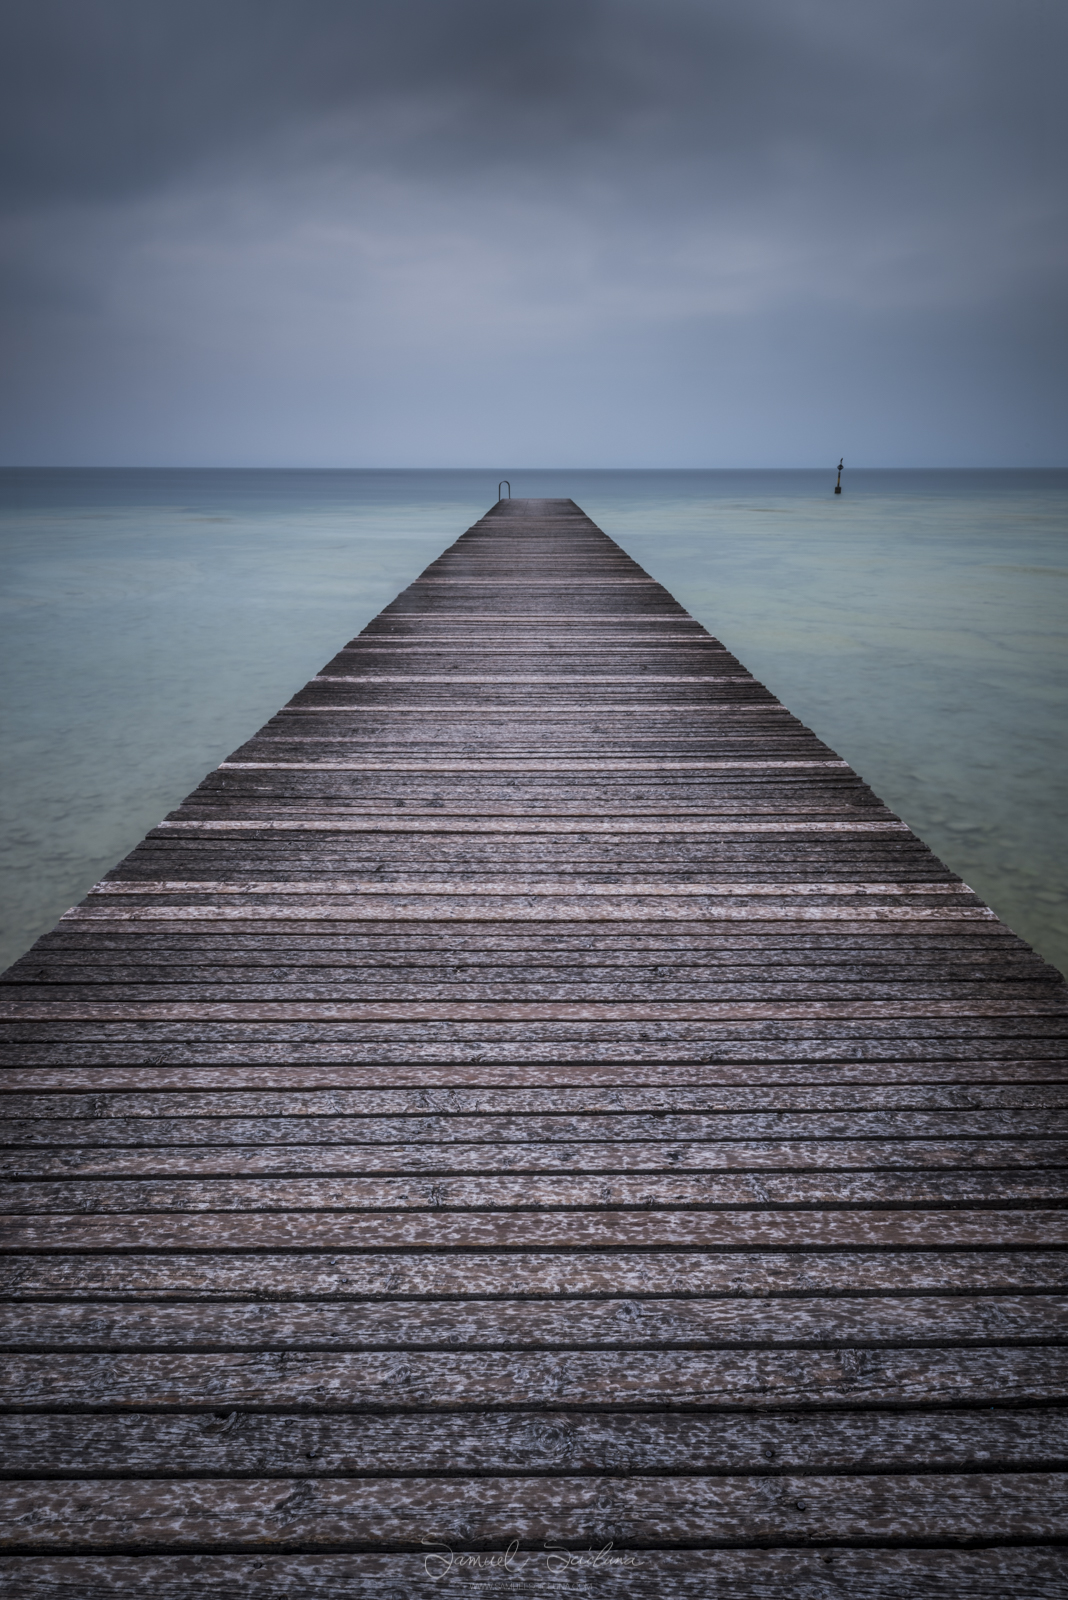 4 minute exposure of a pier in Lago di Garda using a Haida 10 stop neutral density filter.